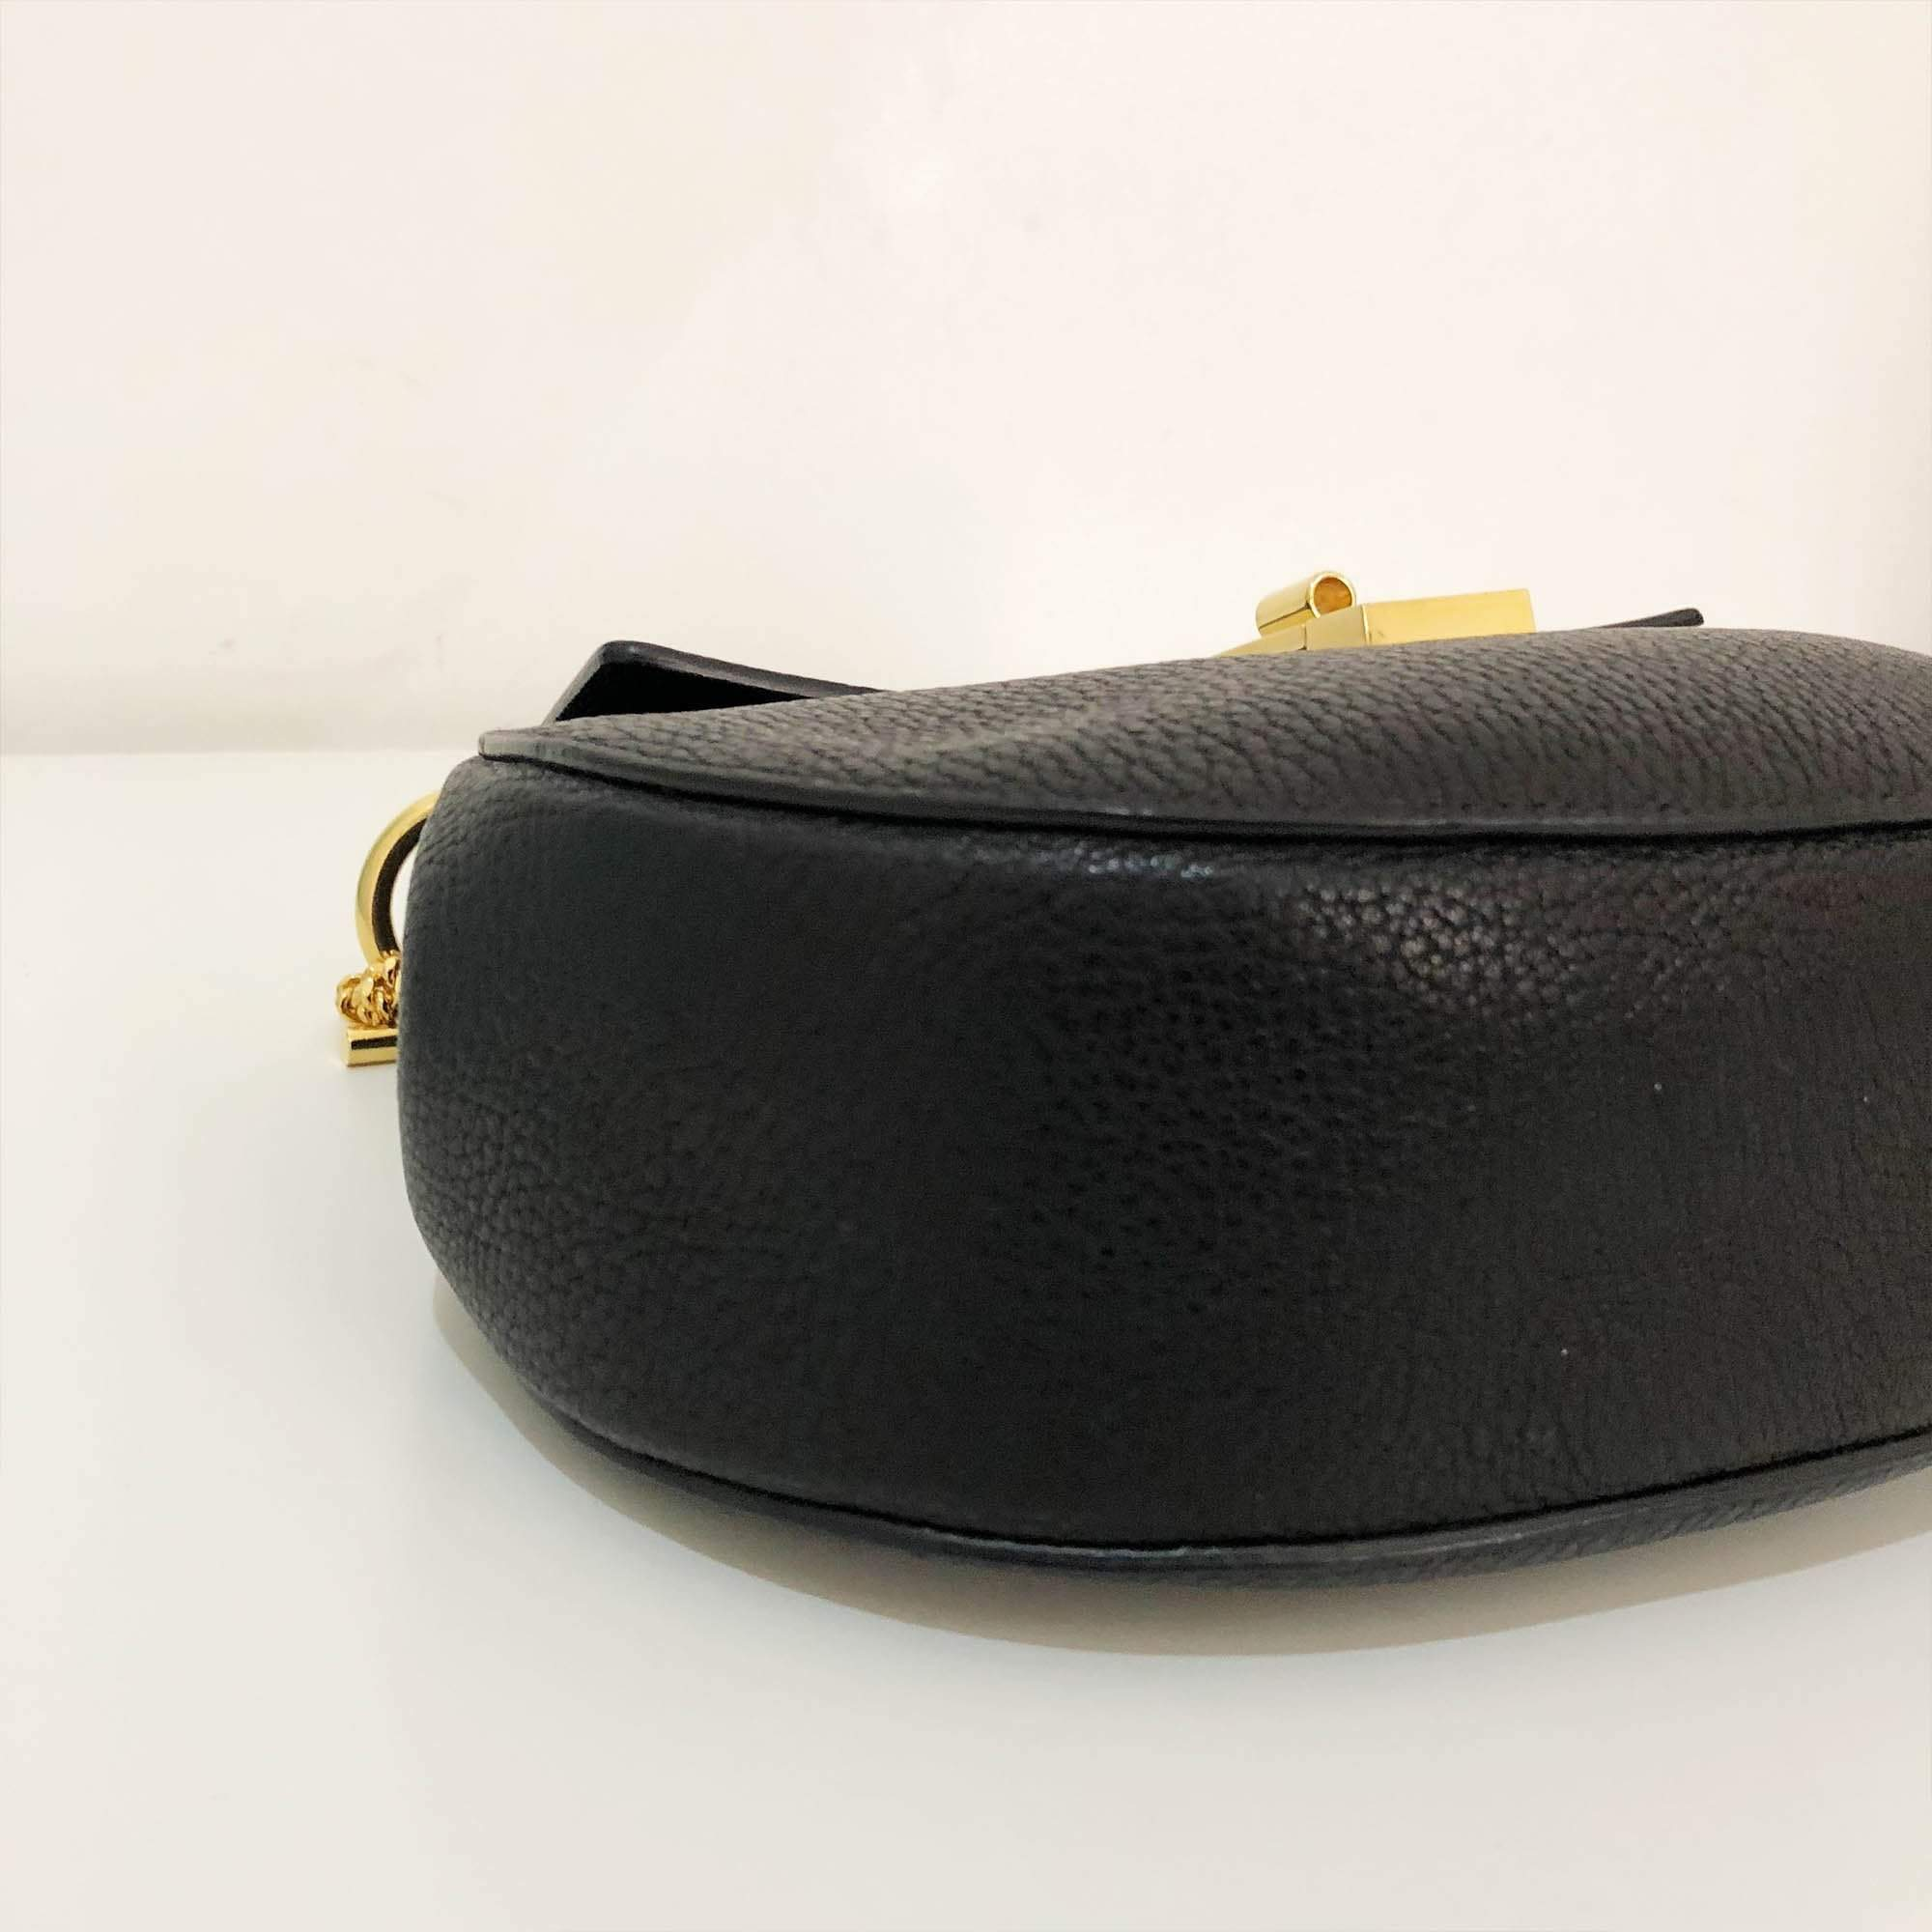 Chloé Black Small Drew Shoulder Bag